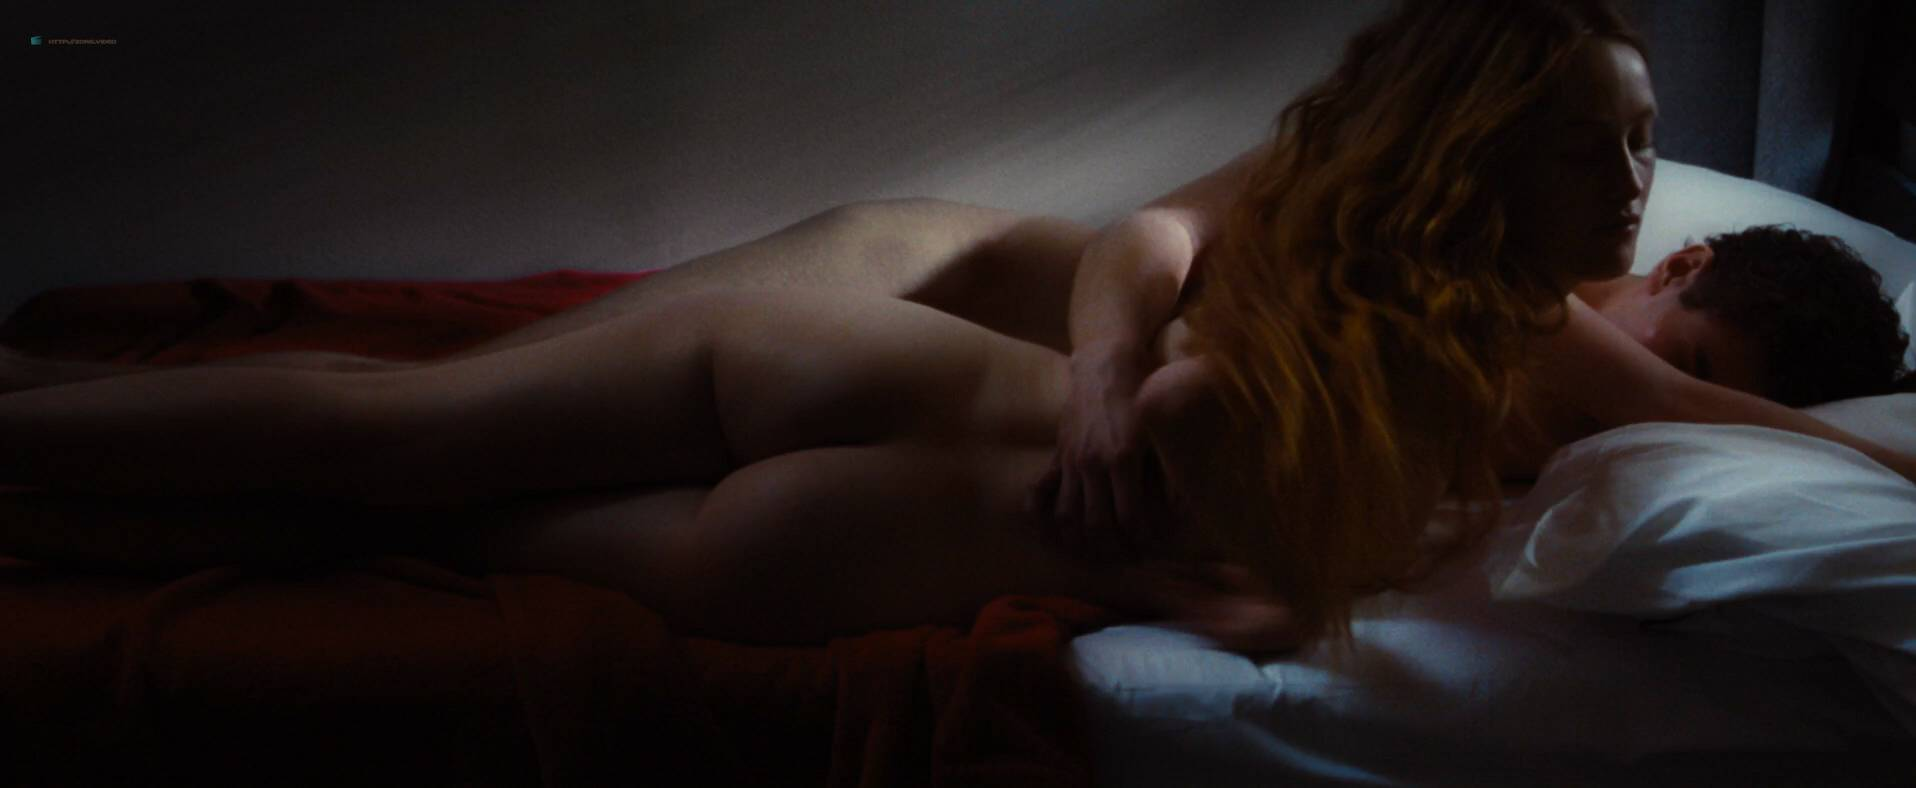 Amy nude isla fisher